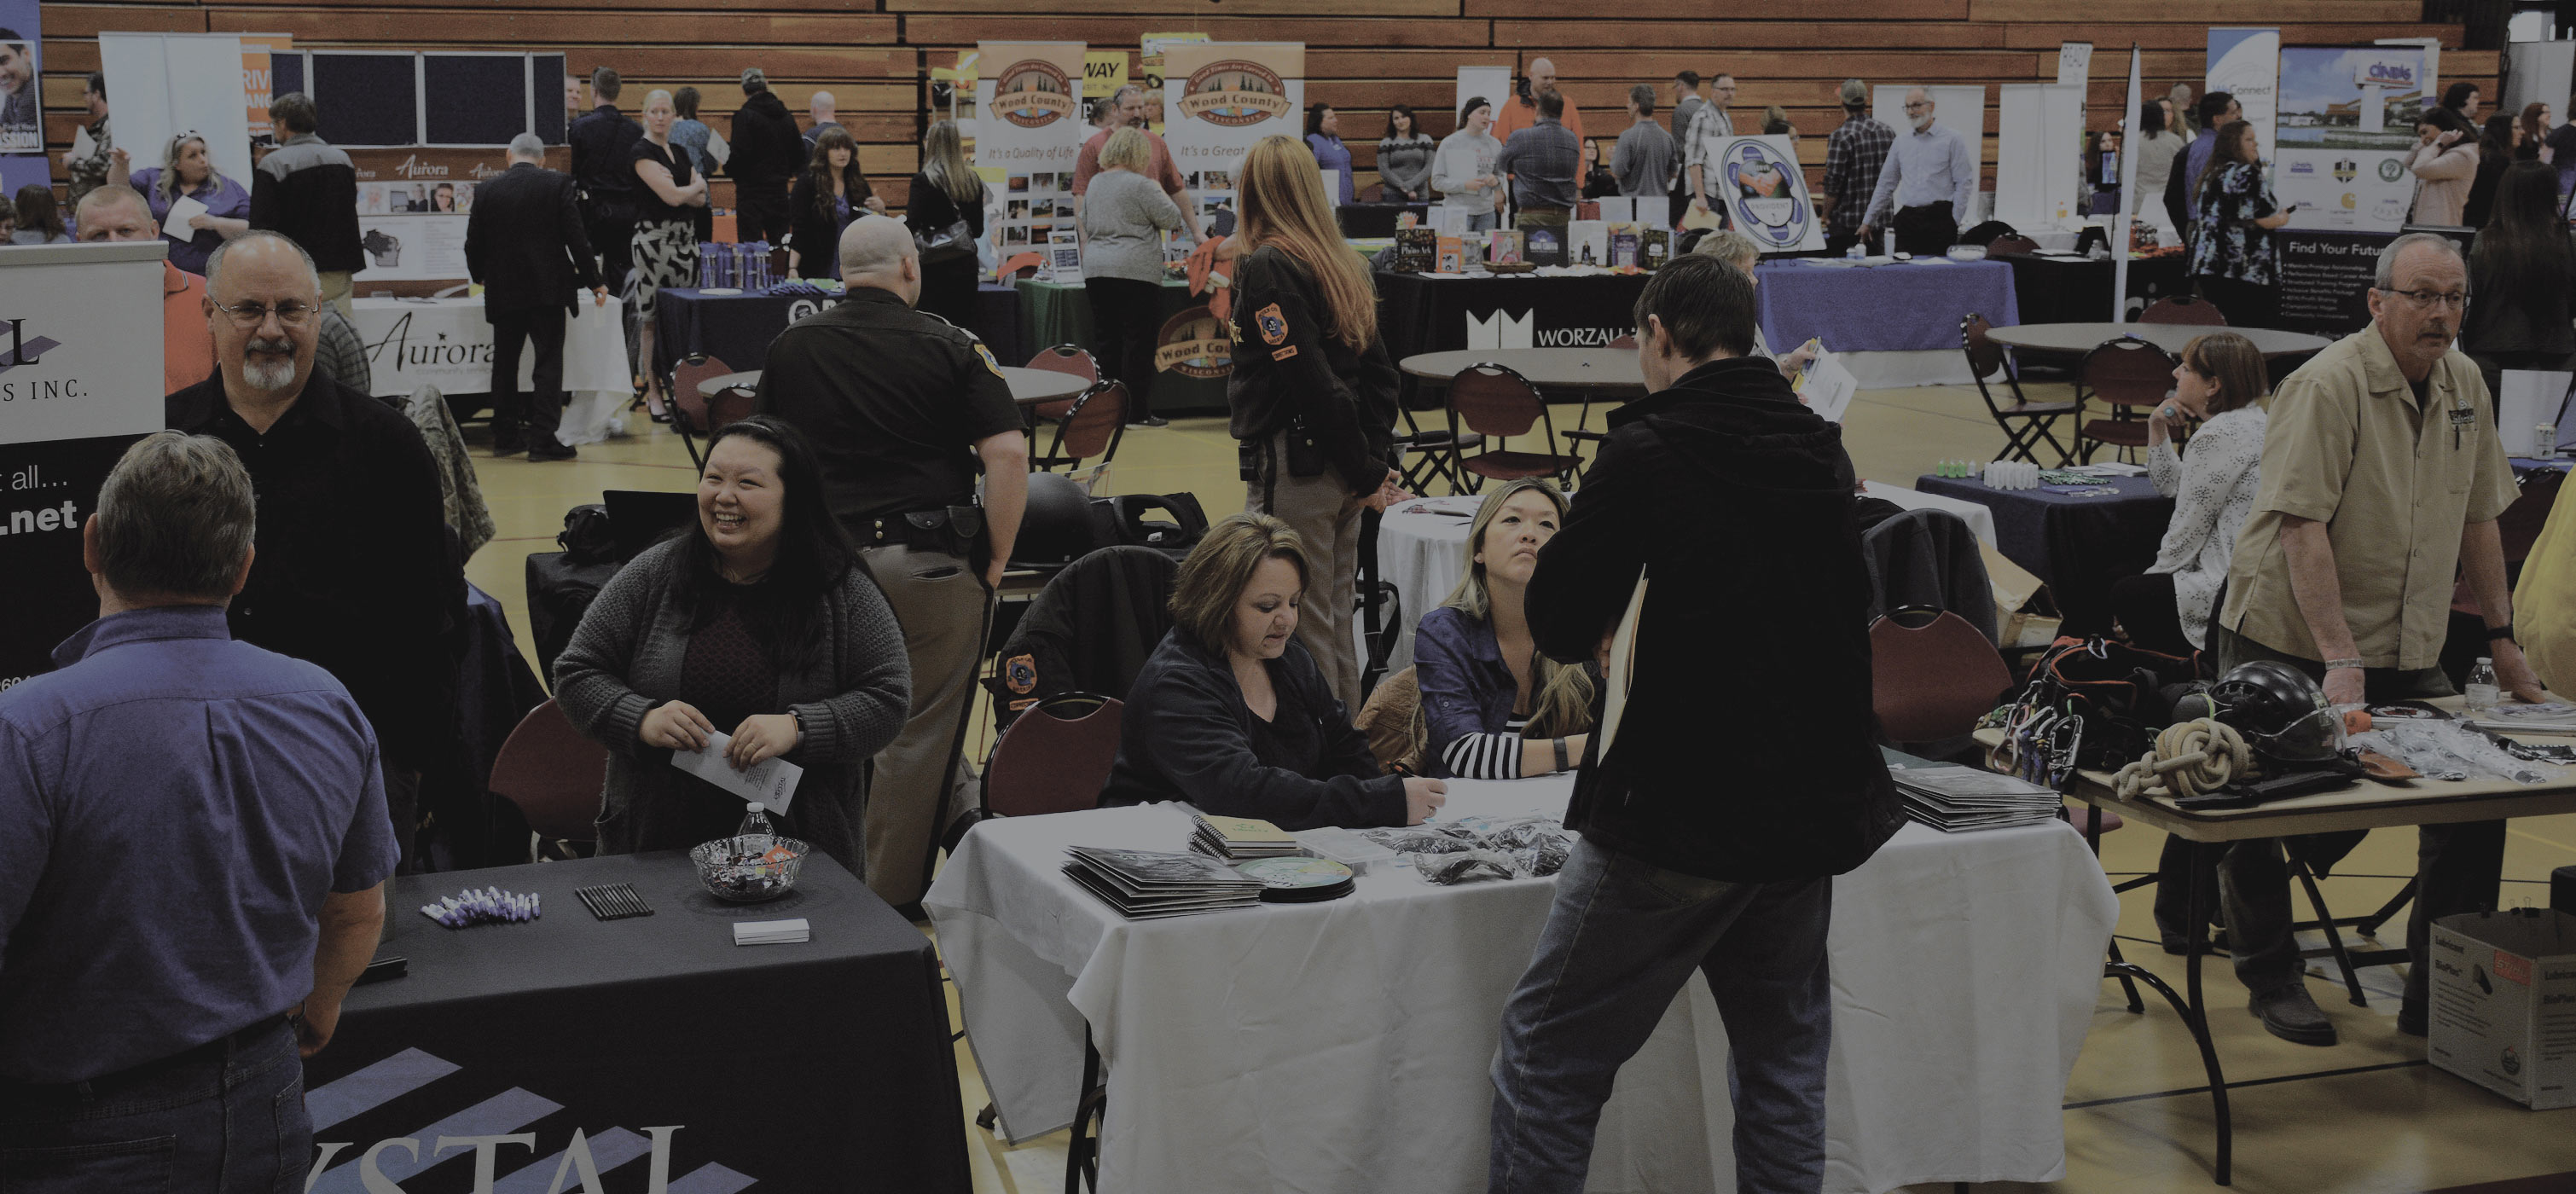 Job Fair taking place in Mid-State Technical College Gymnasium. 15+ tables set up in view with poster board and people walking around looking at job opportunities.